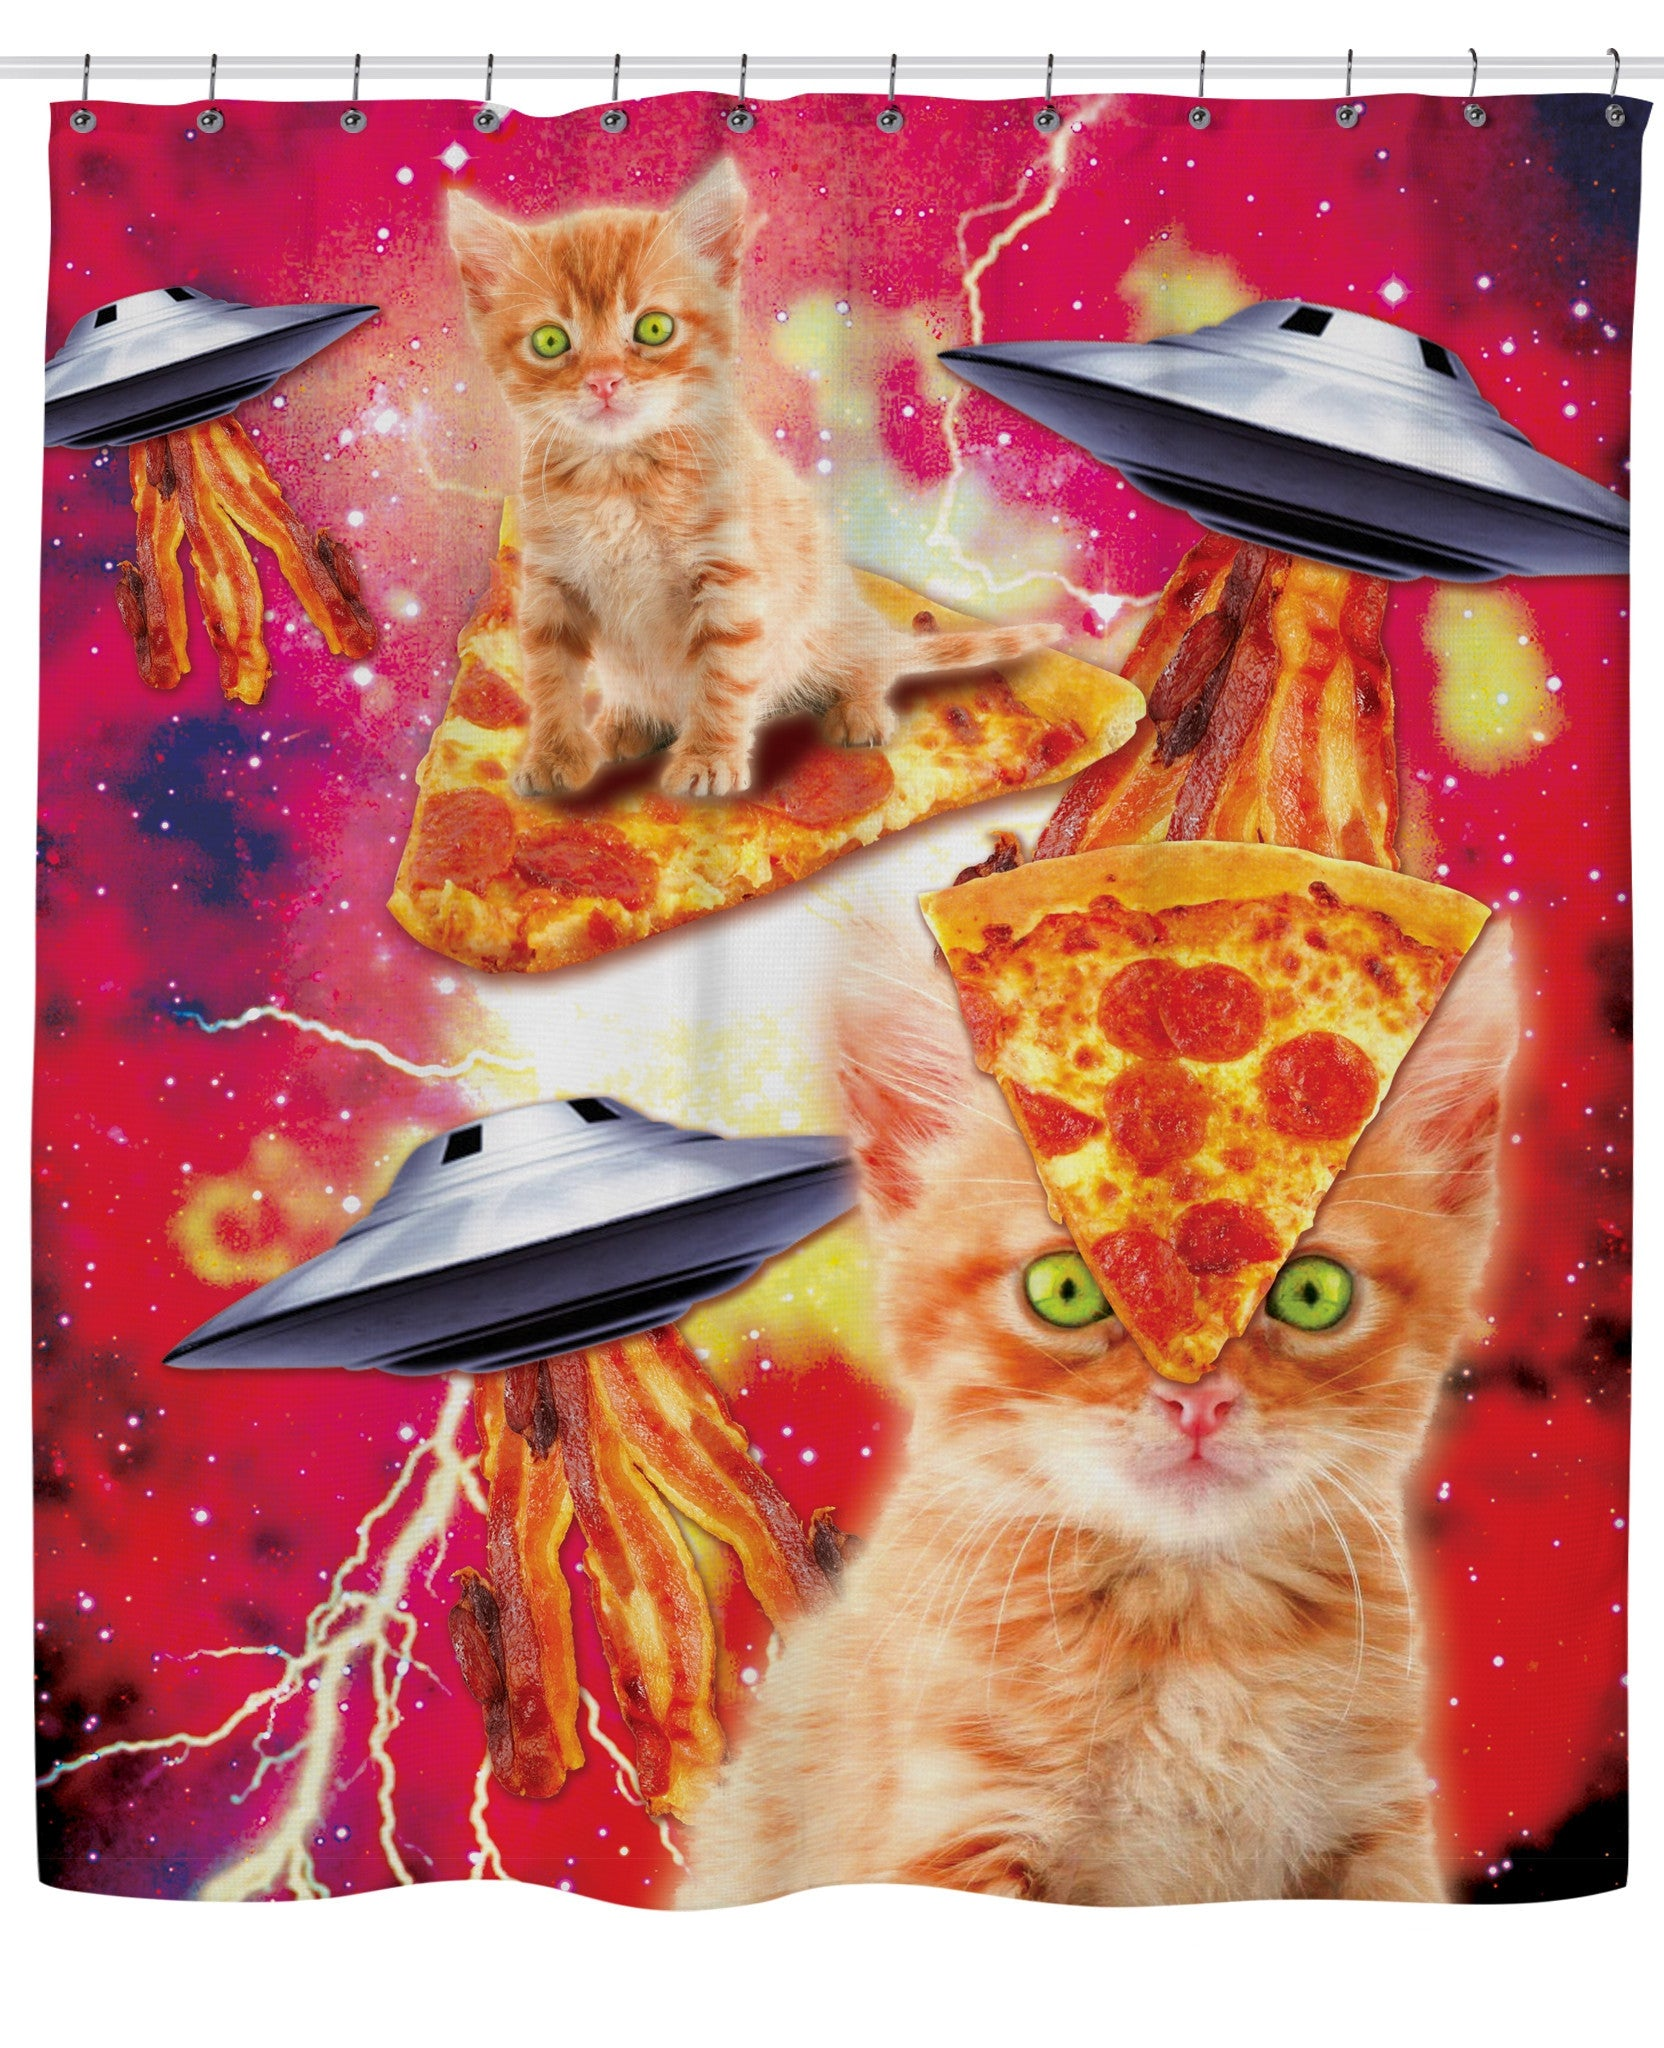 Bacon Pizza Space Cat Shower Curtain - TShirtsRUS.co